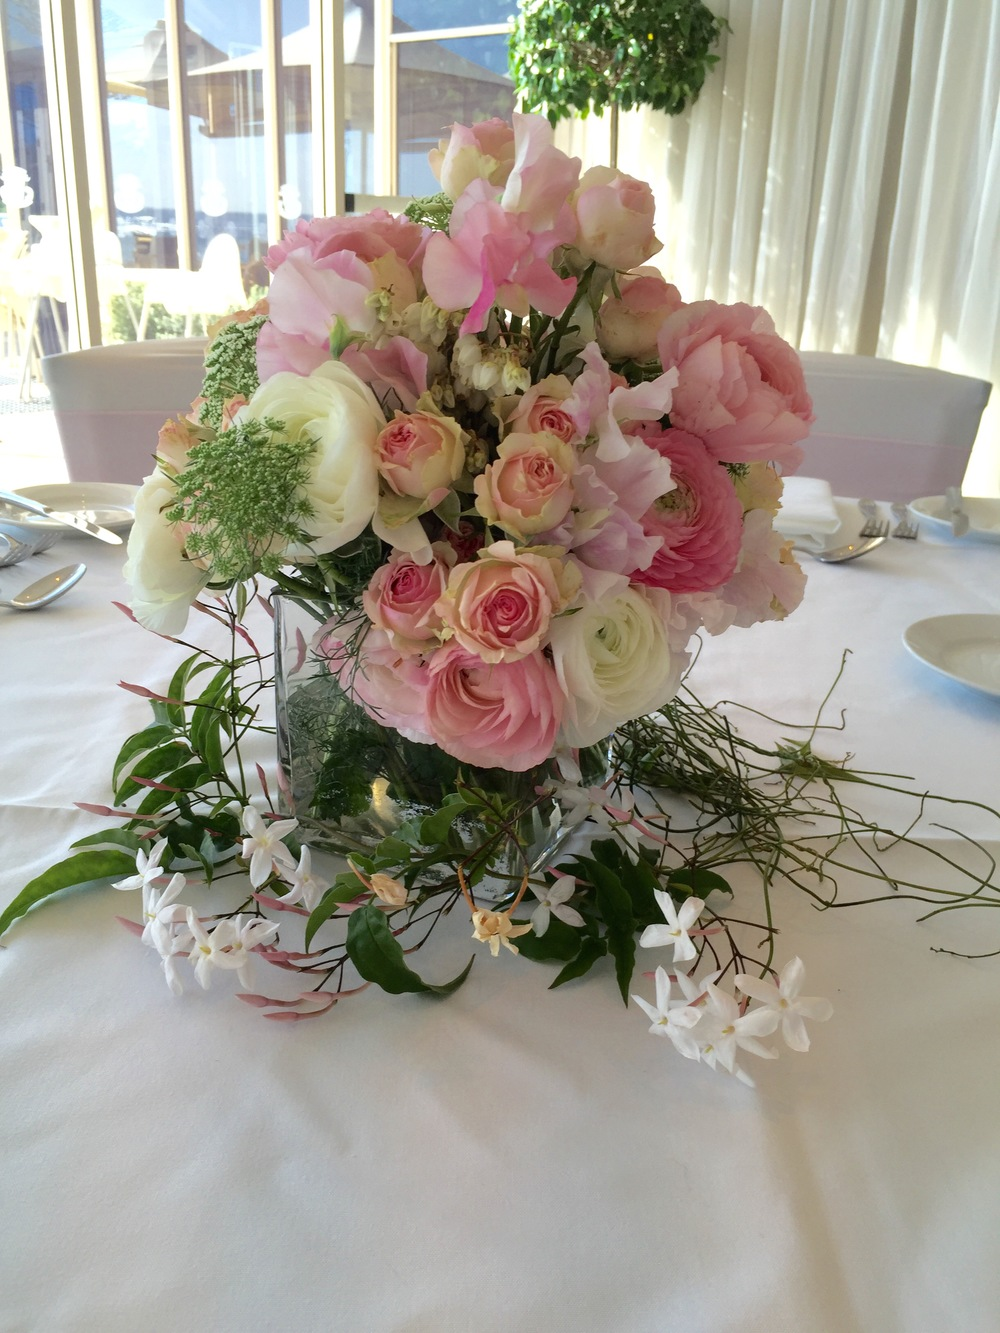 Long Reef Golf Club - October 2015  We were so happy with the beautiful table arrangements.  Everything just worked so well together. Thank you girls for all you attention to detail and making the day a very memorable one.  Jenny